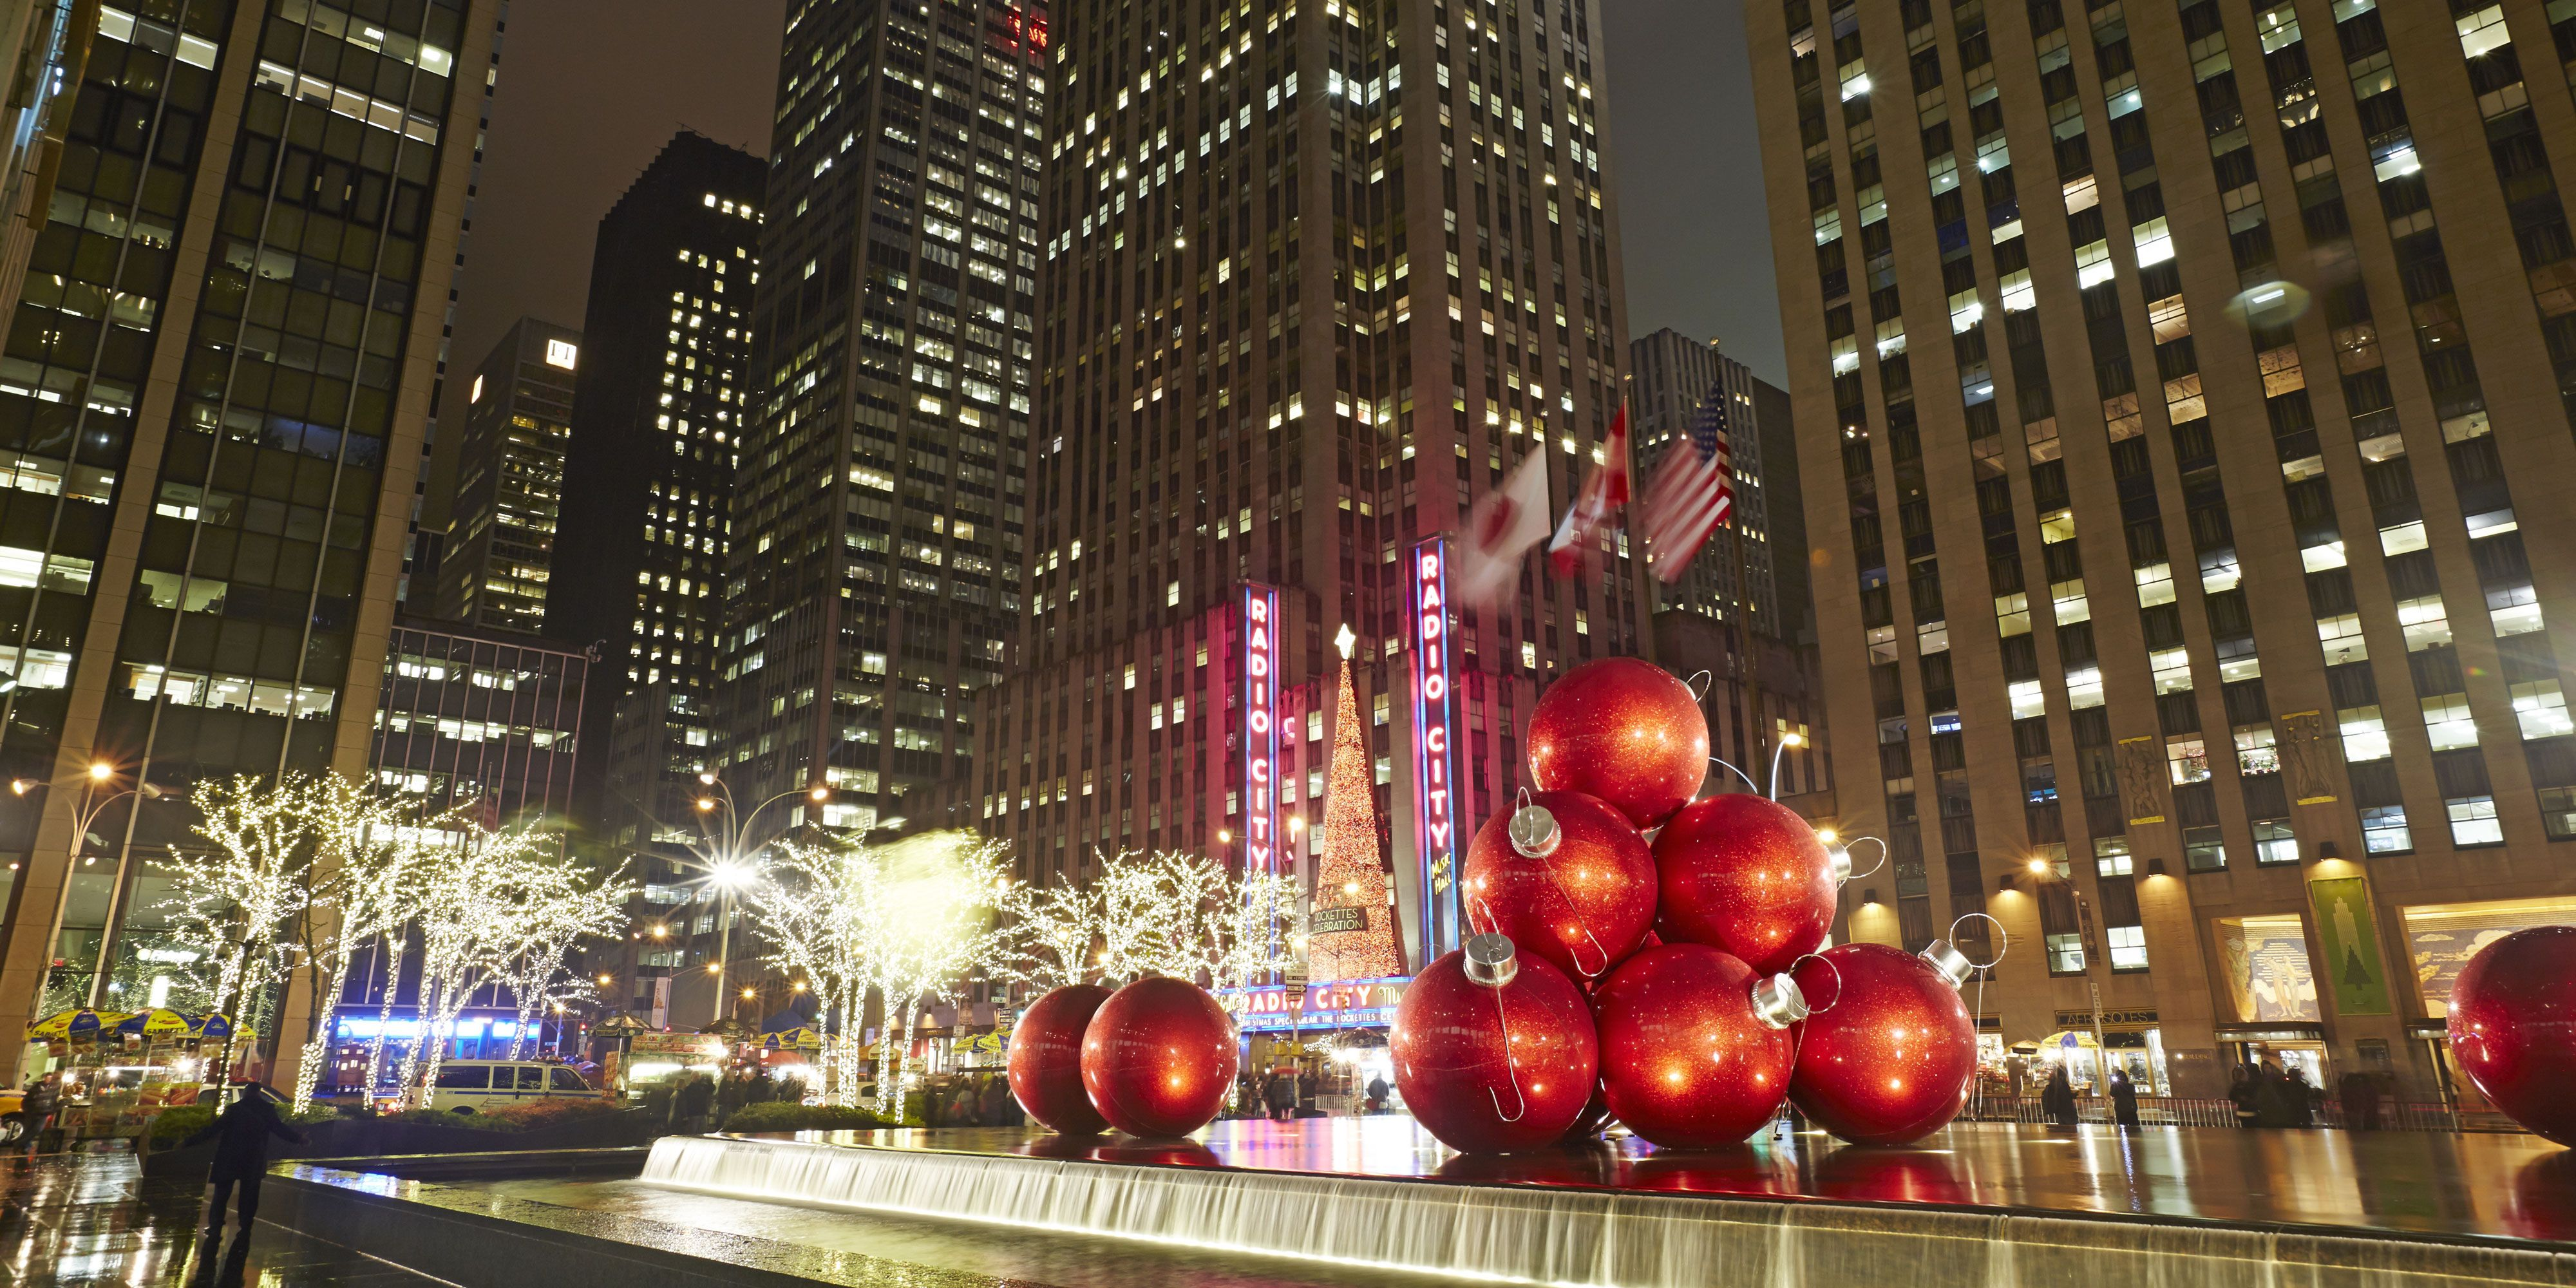 Nyc Christmas.These Photos Prove That Nyc At Christmas Is A Sight To Behold